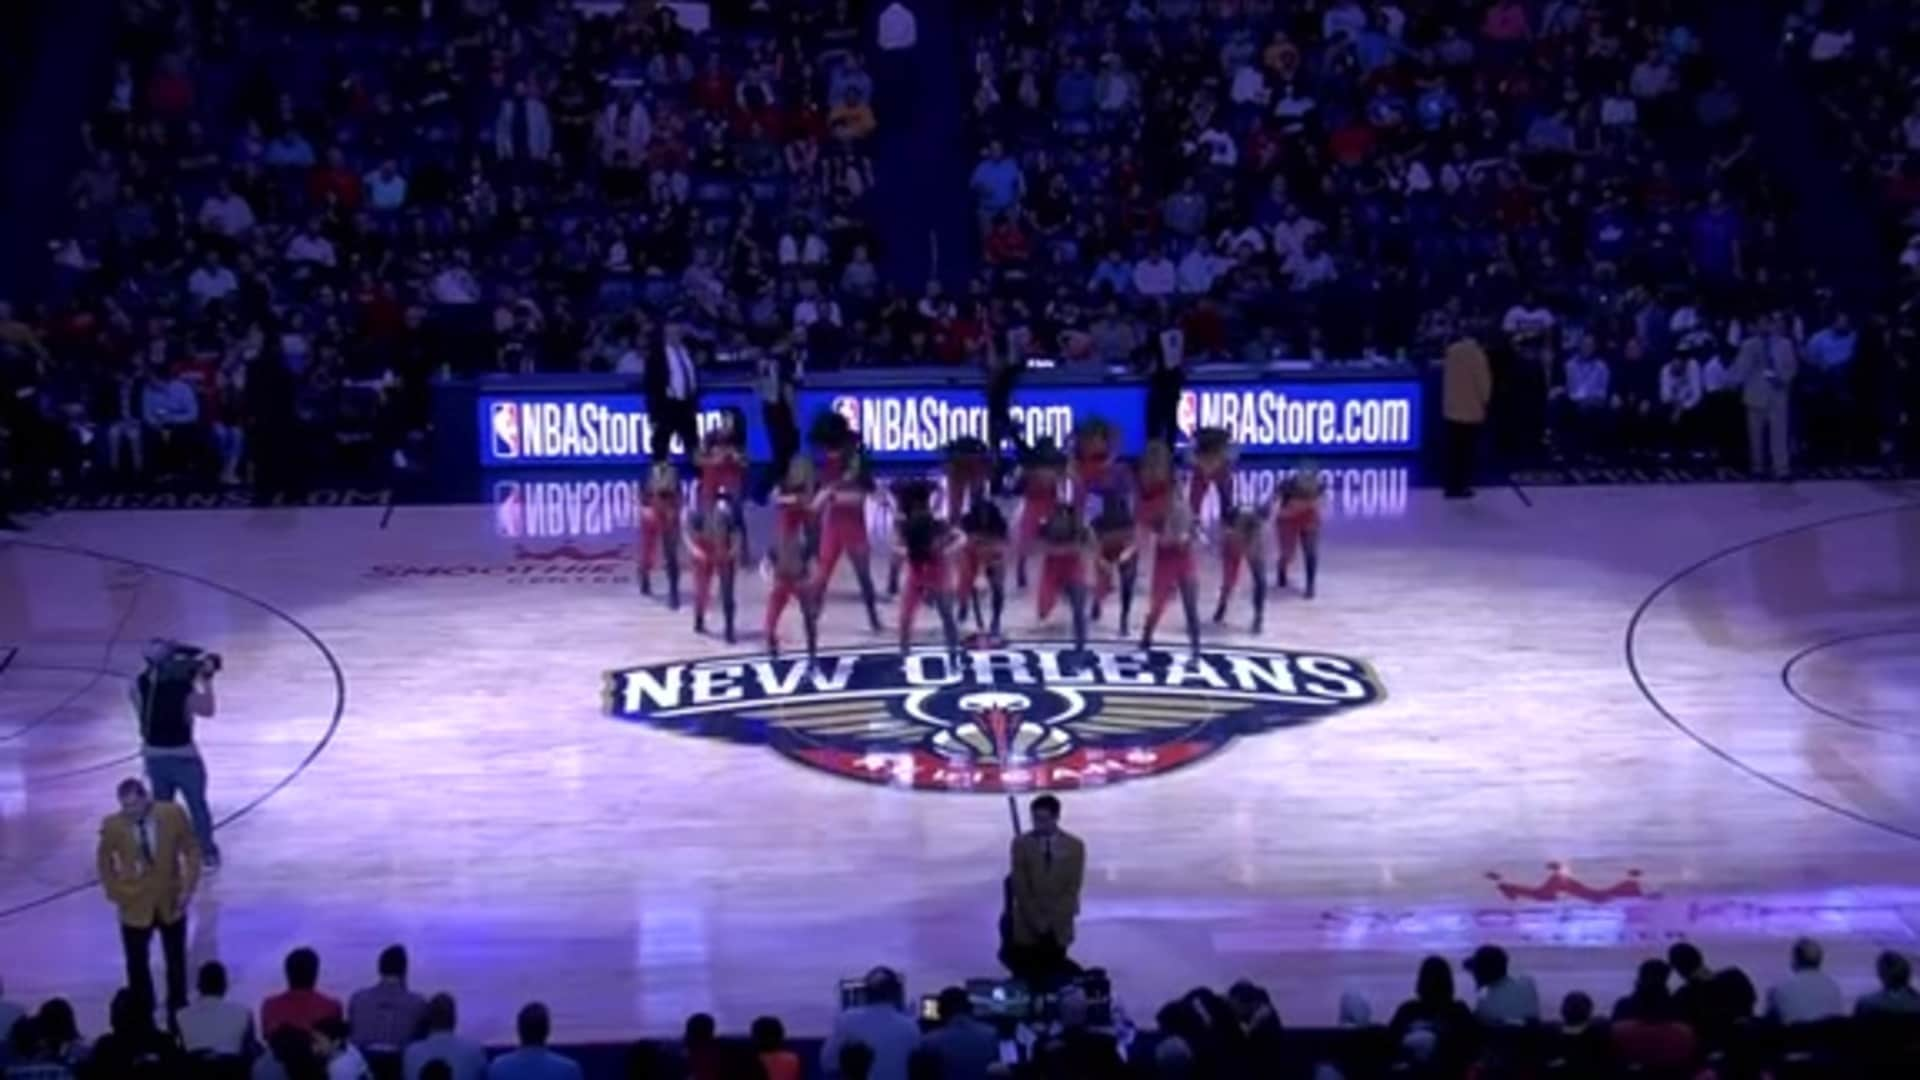 Entertainment: Pelicans Dance Team 3rd quarter performance - January 18 vs. L.A. Clippers